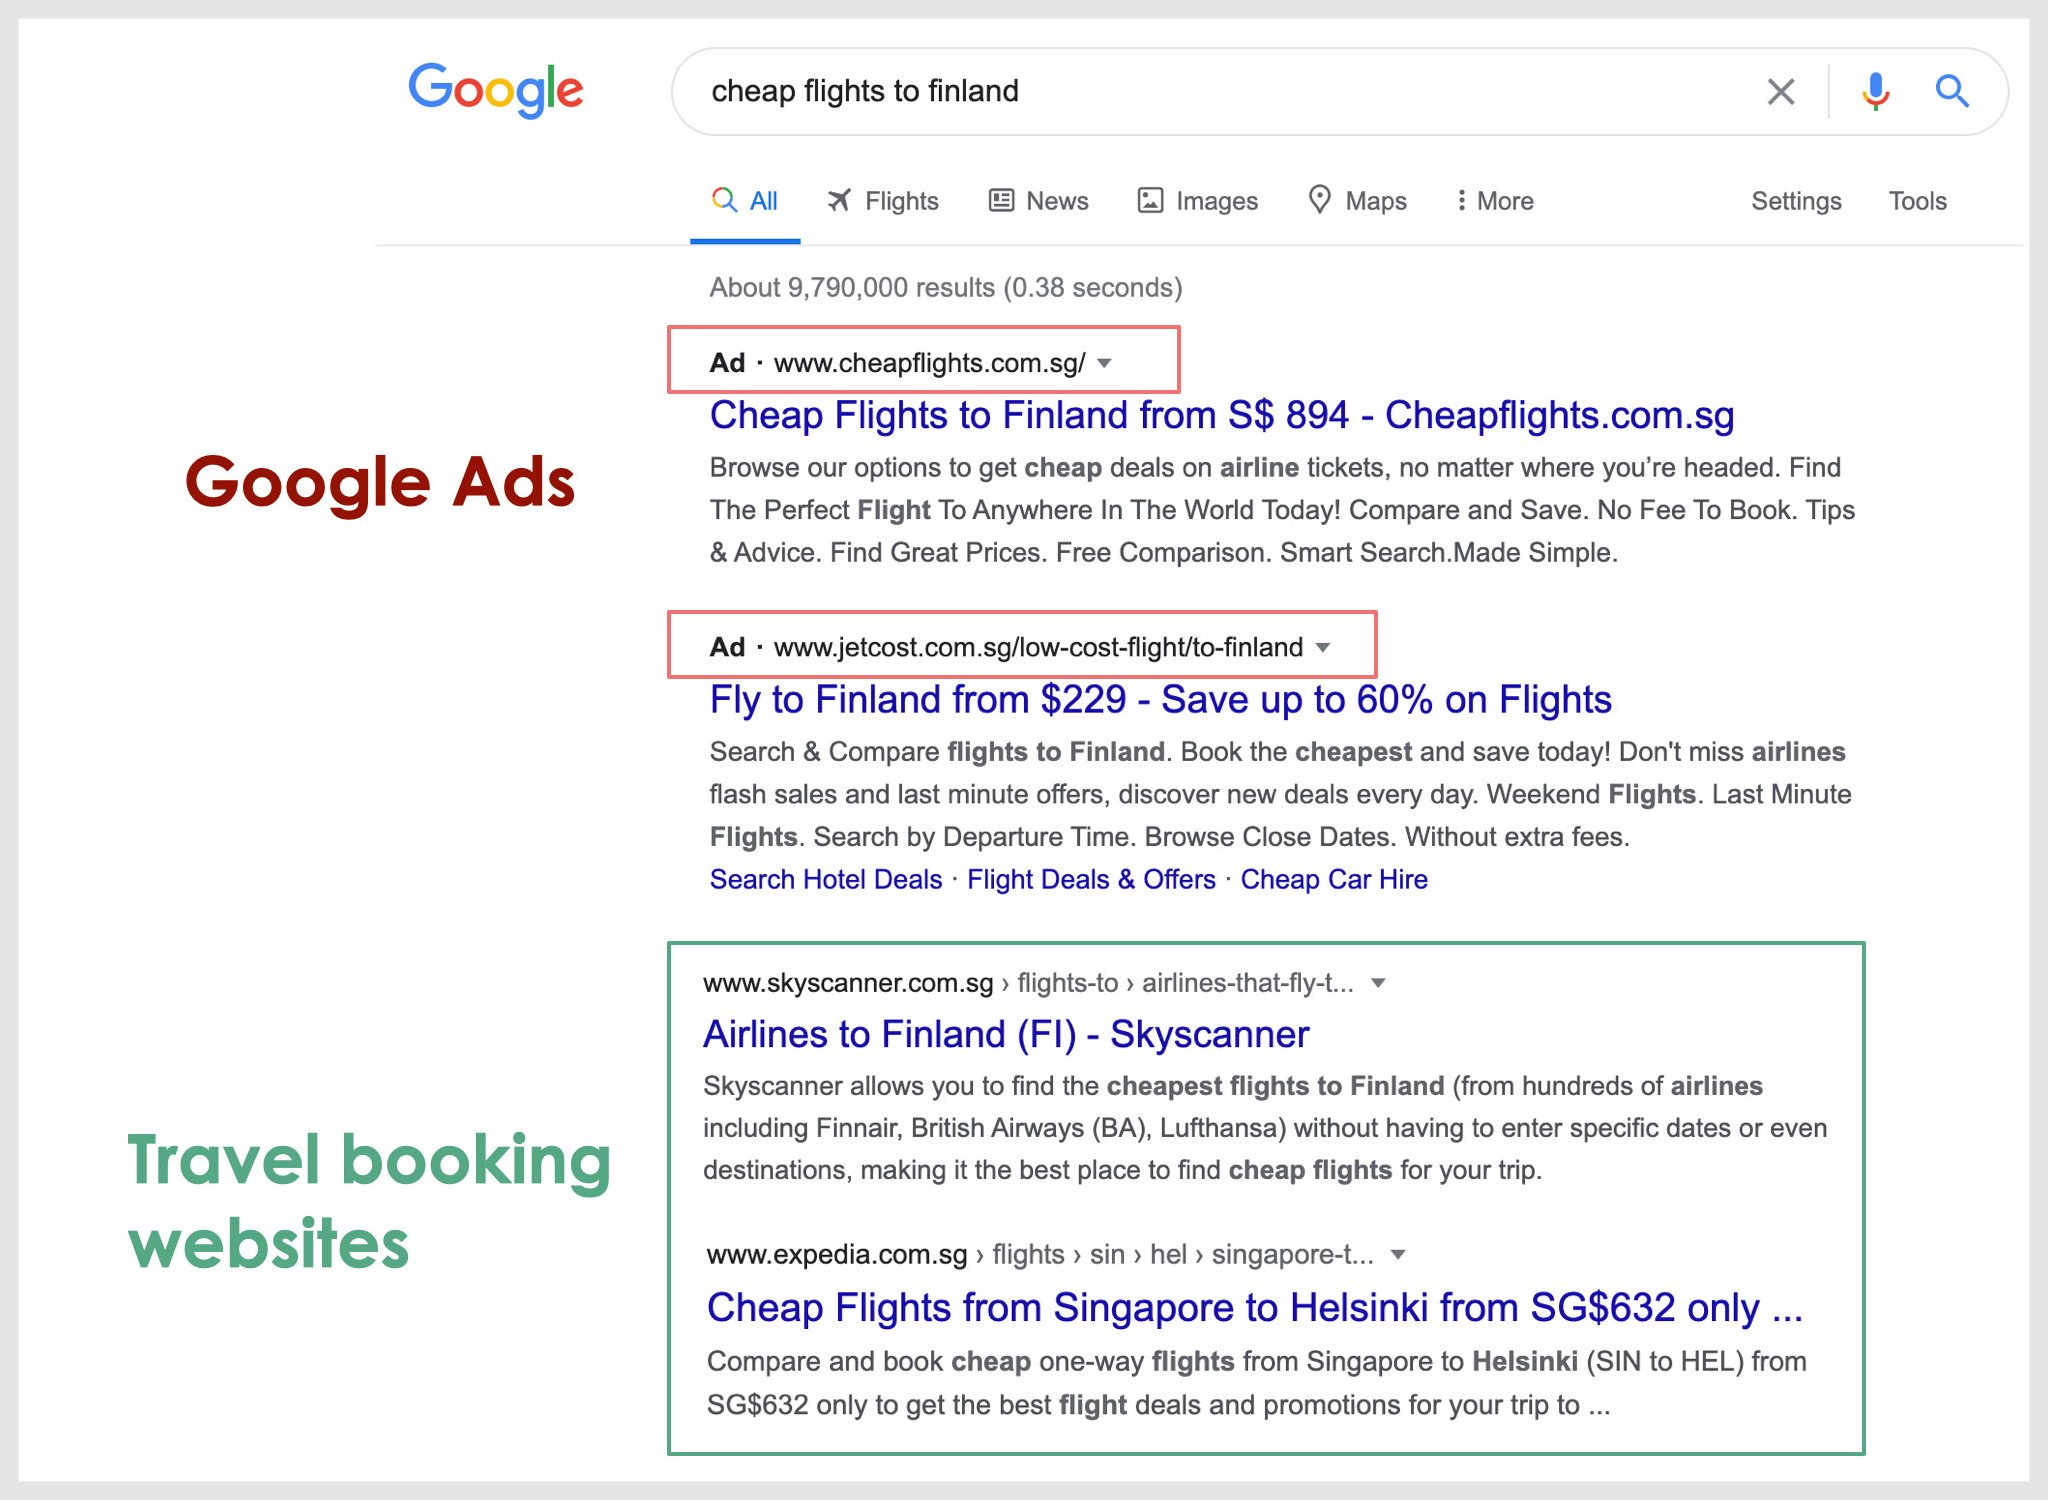 seo-commercial-intent-search-results